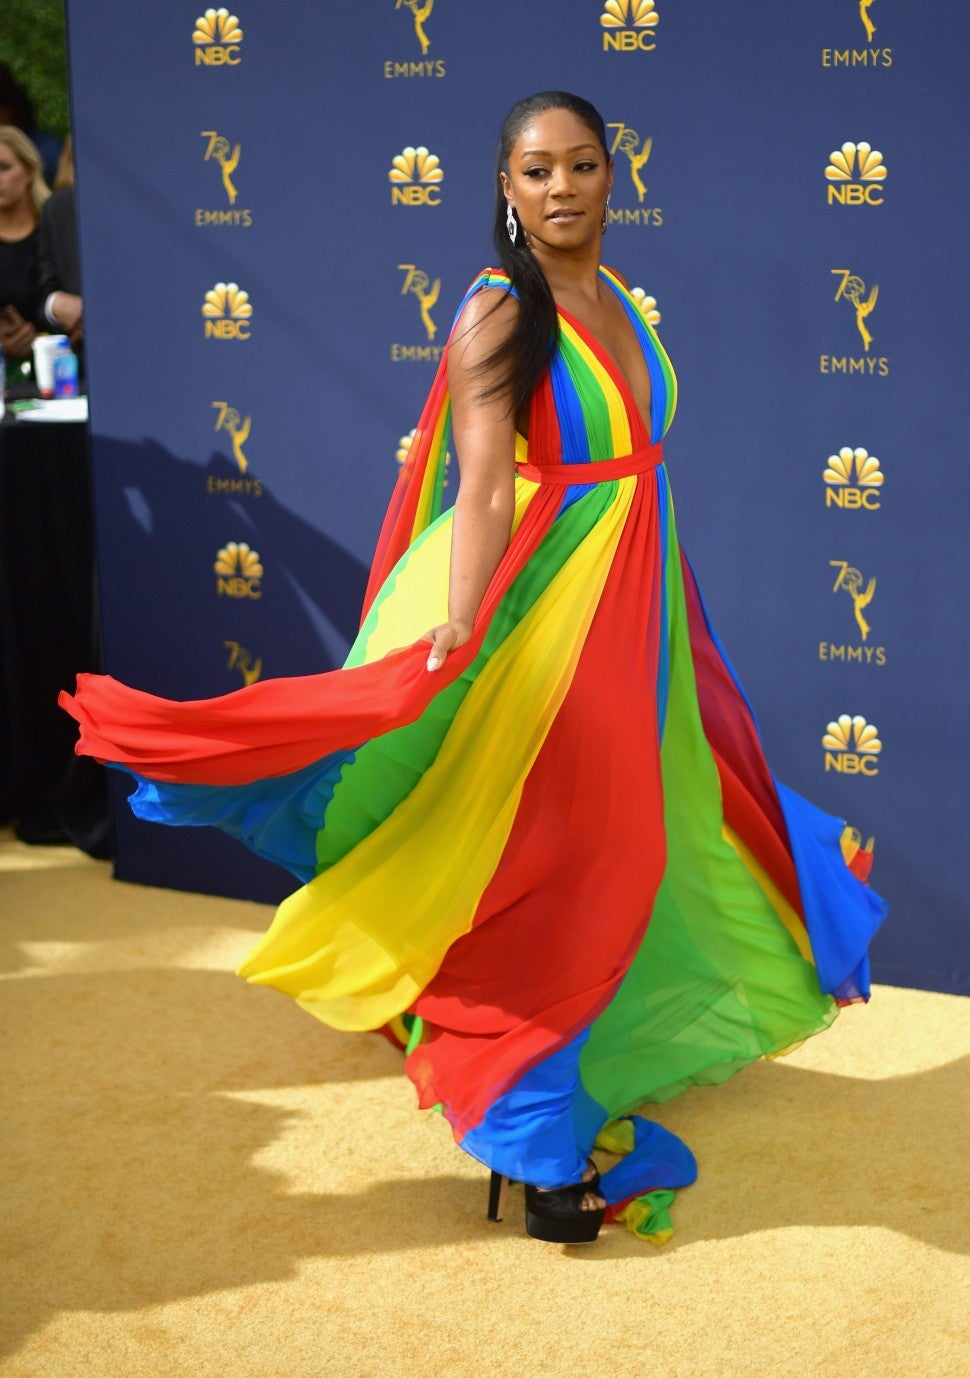 Tiffany Haddish twirling in rainbow dress